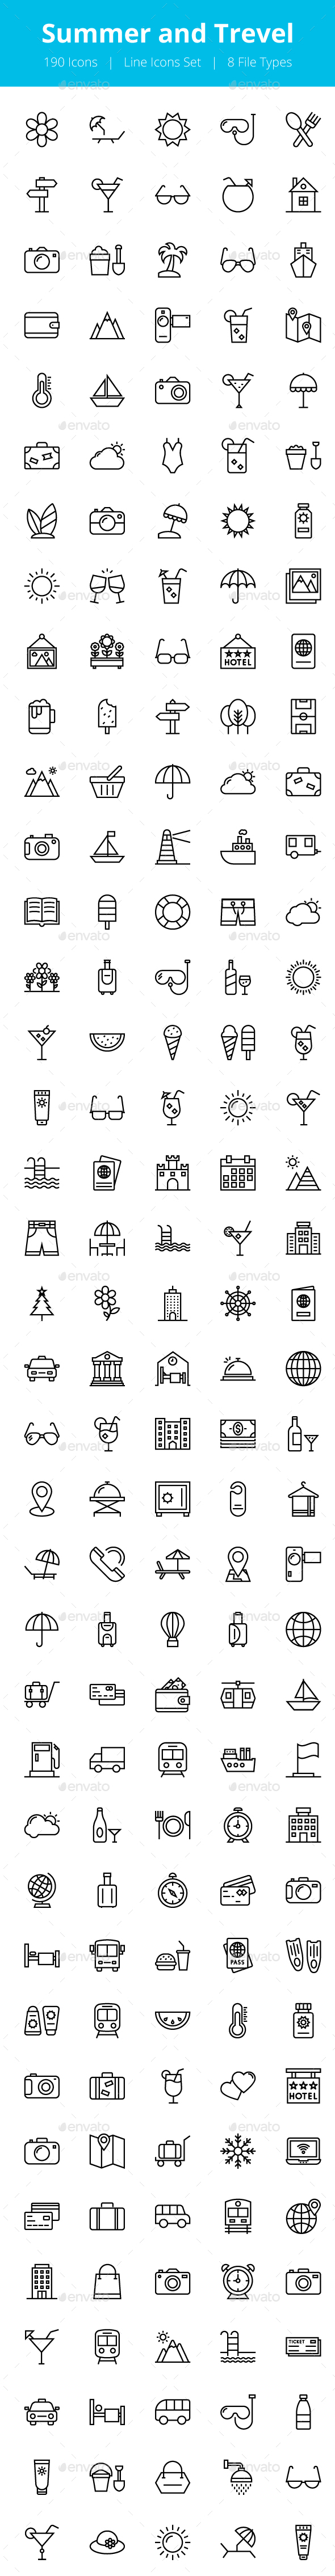 175+ Summer and Travel Line Icons - Icons